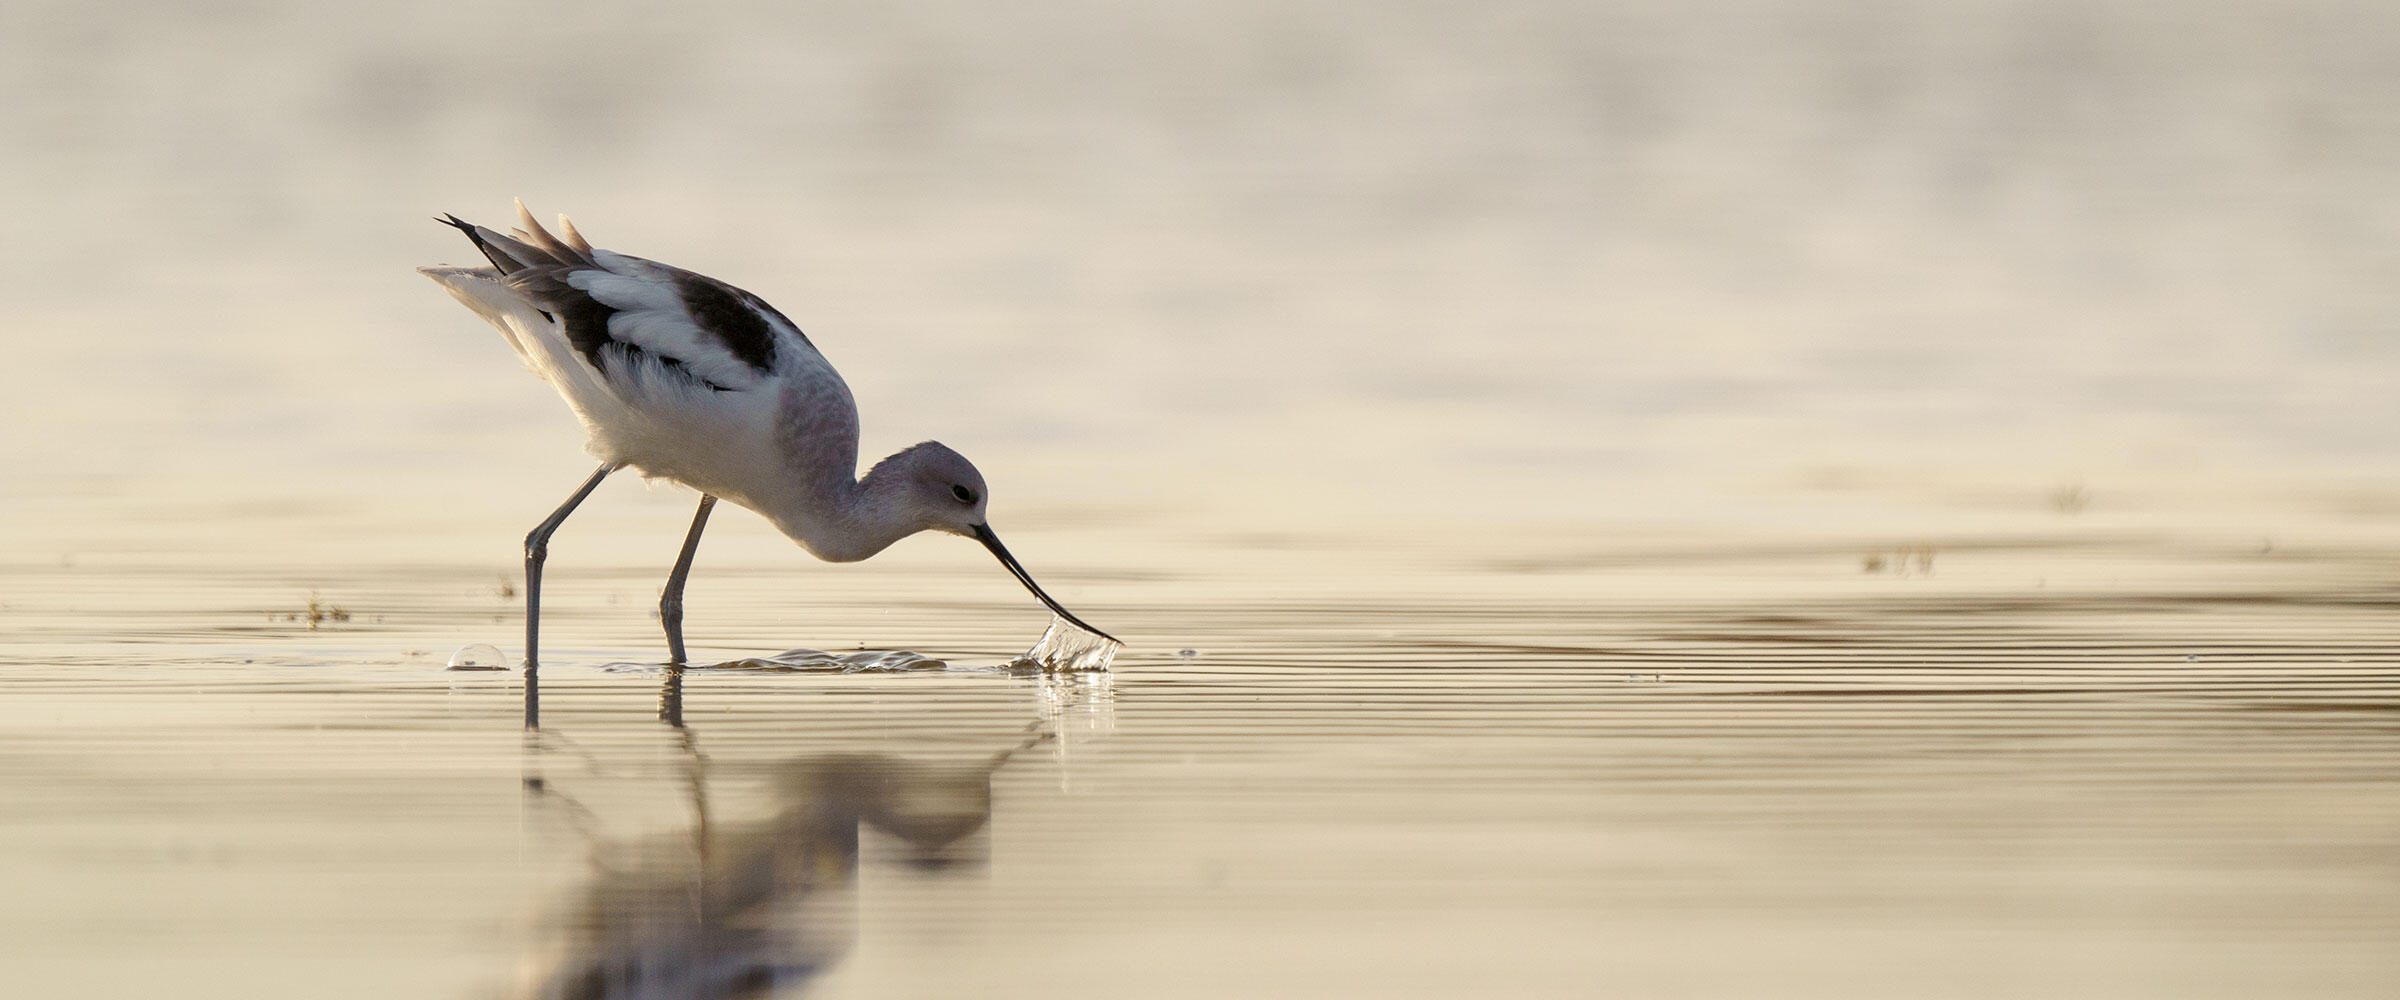 An American Avocet forages in a saline wetland.